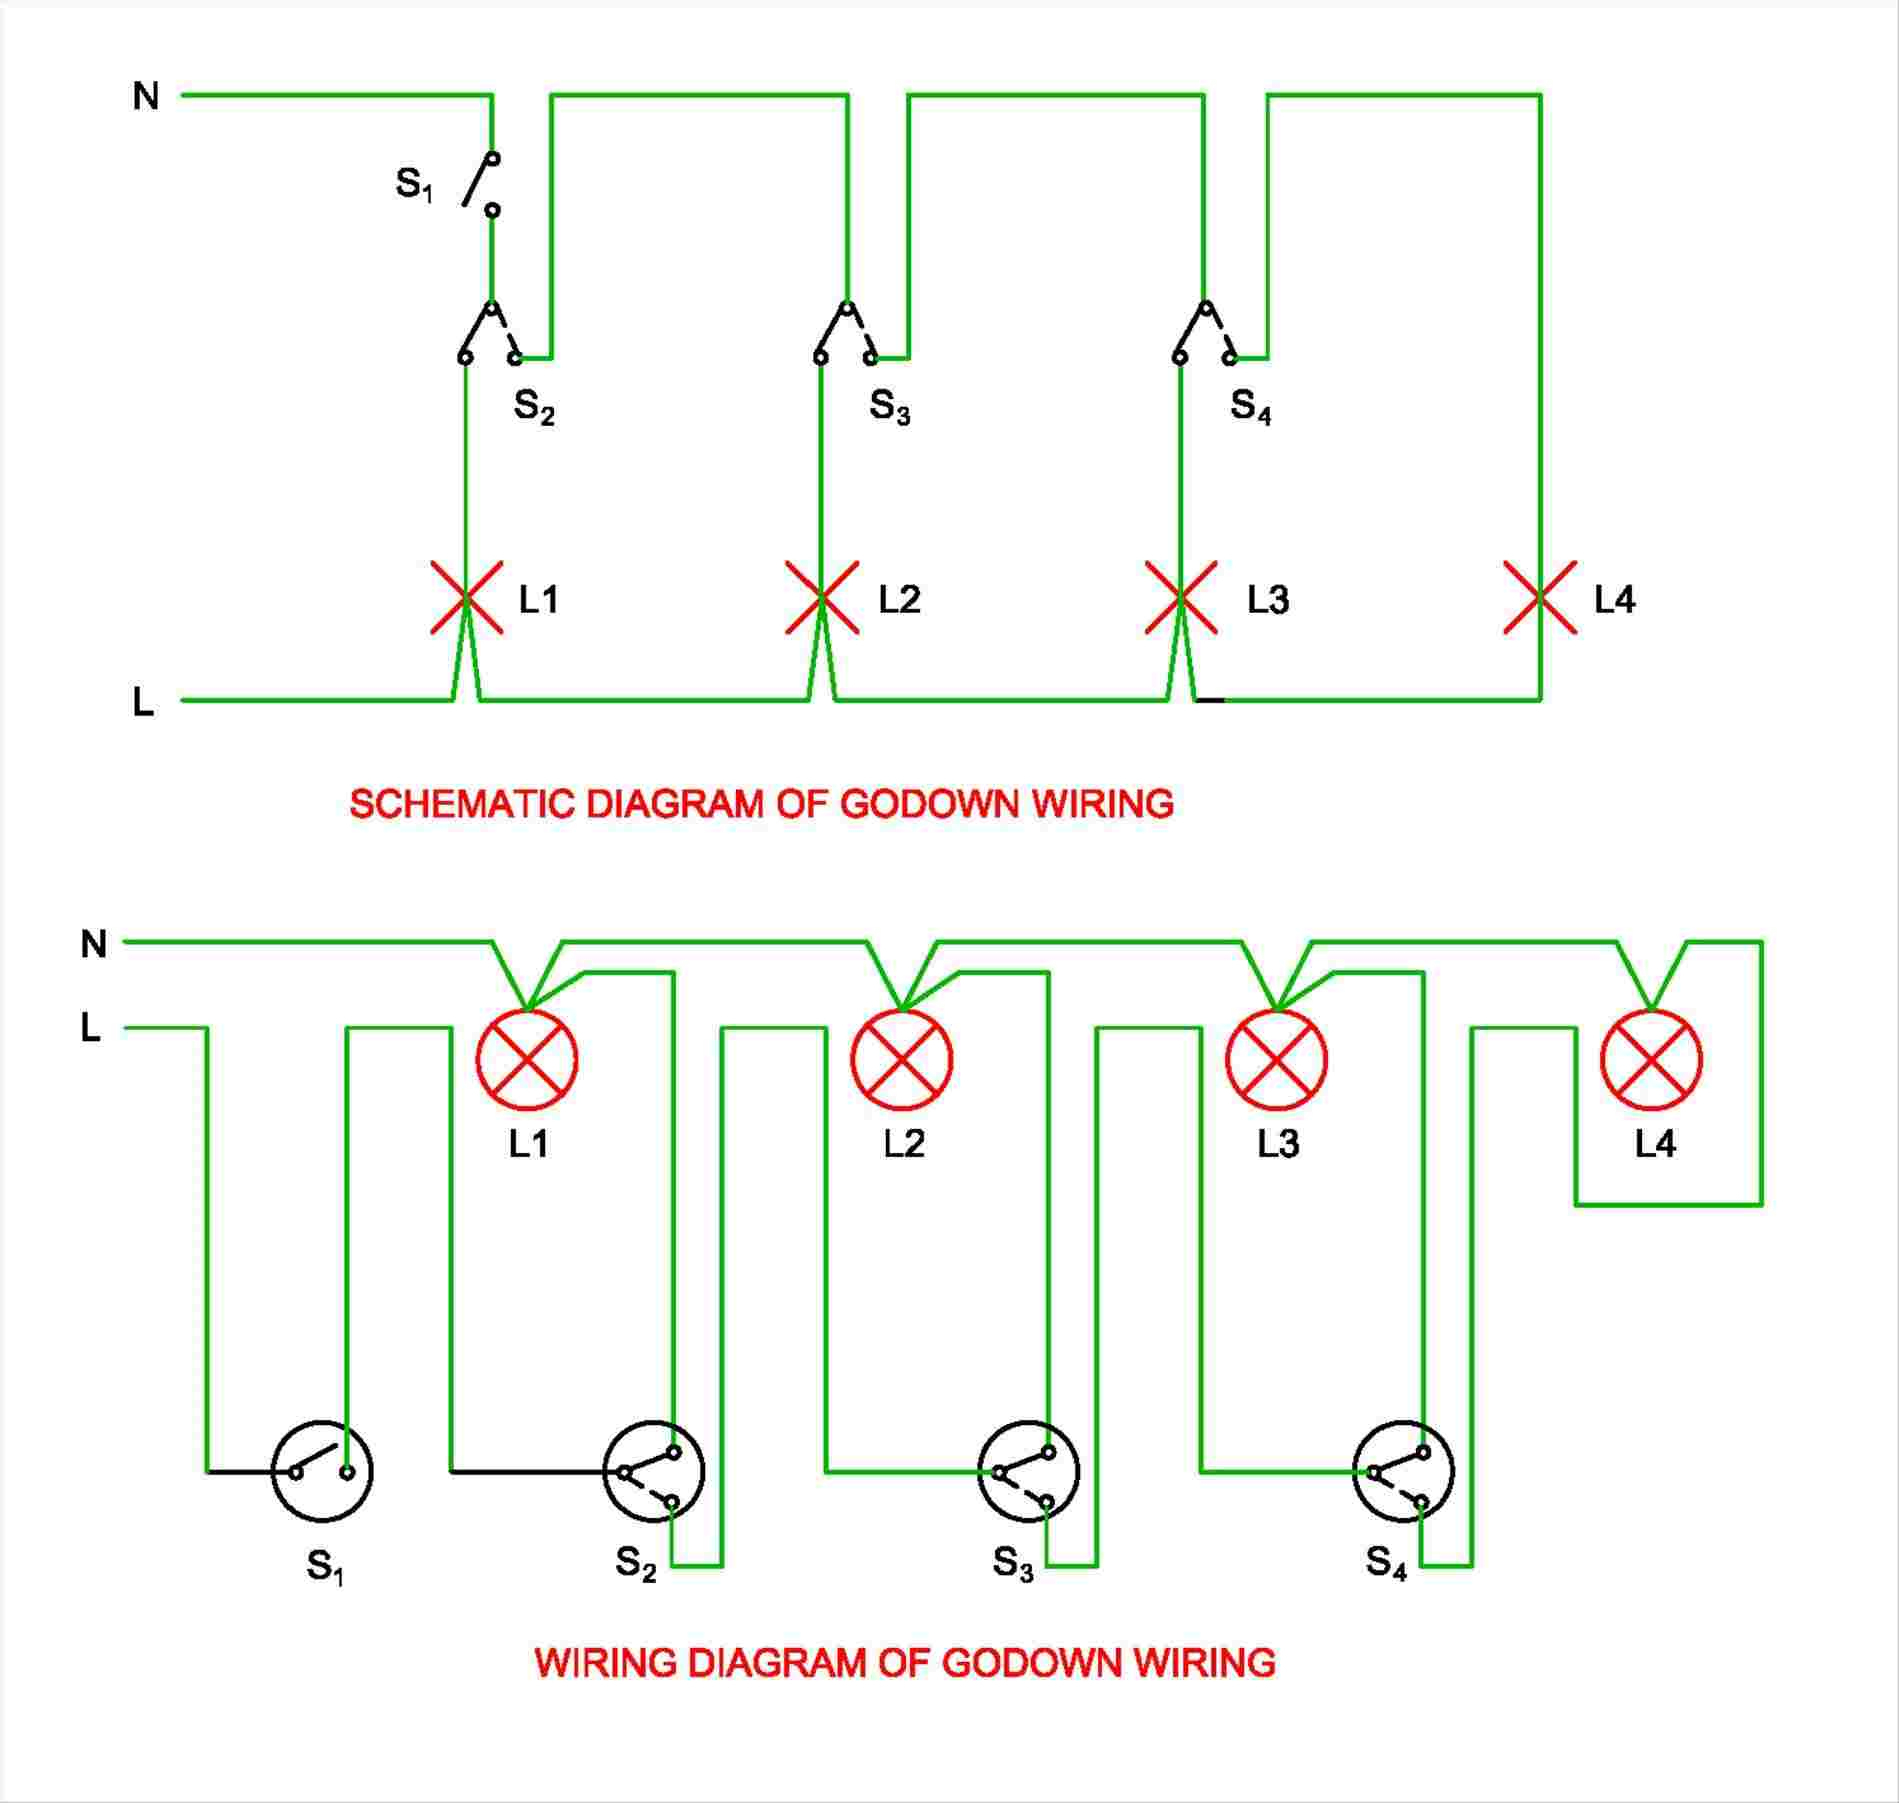 House Wiring Connection Diagram - All Wiring Diagram - Trailer Wiring Diagram In South Africa